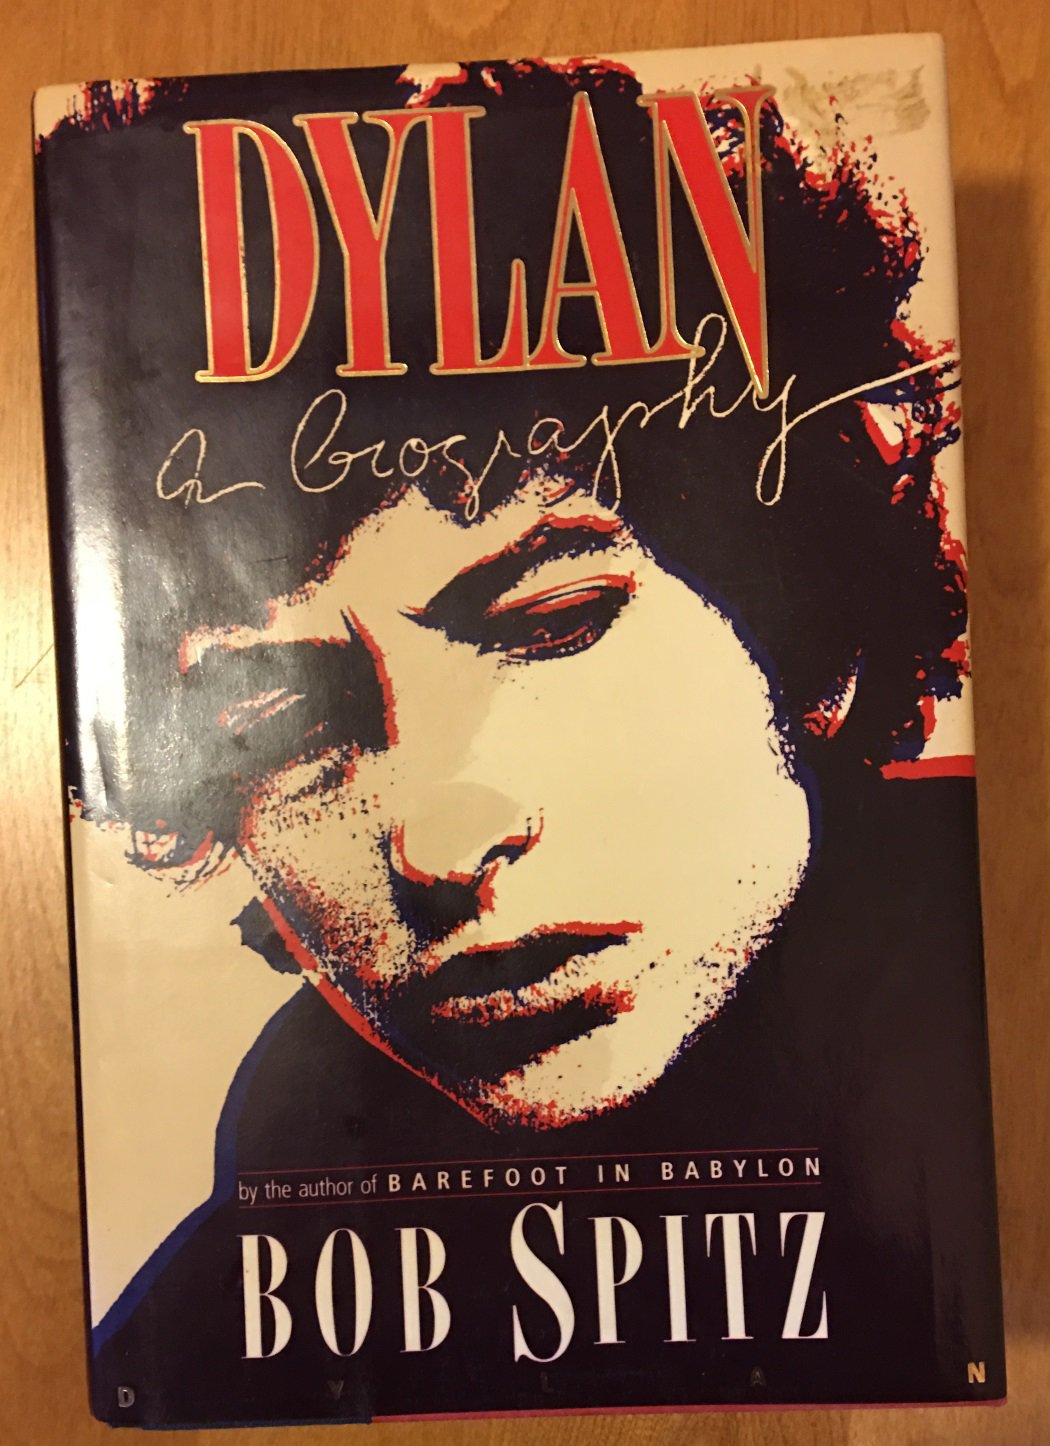 Dylan A Biography